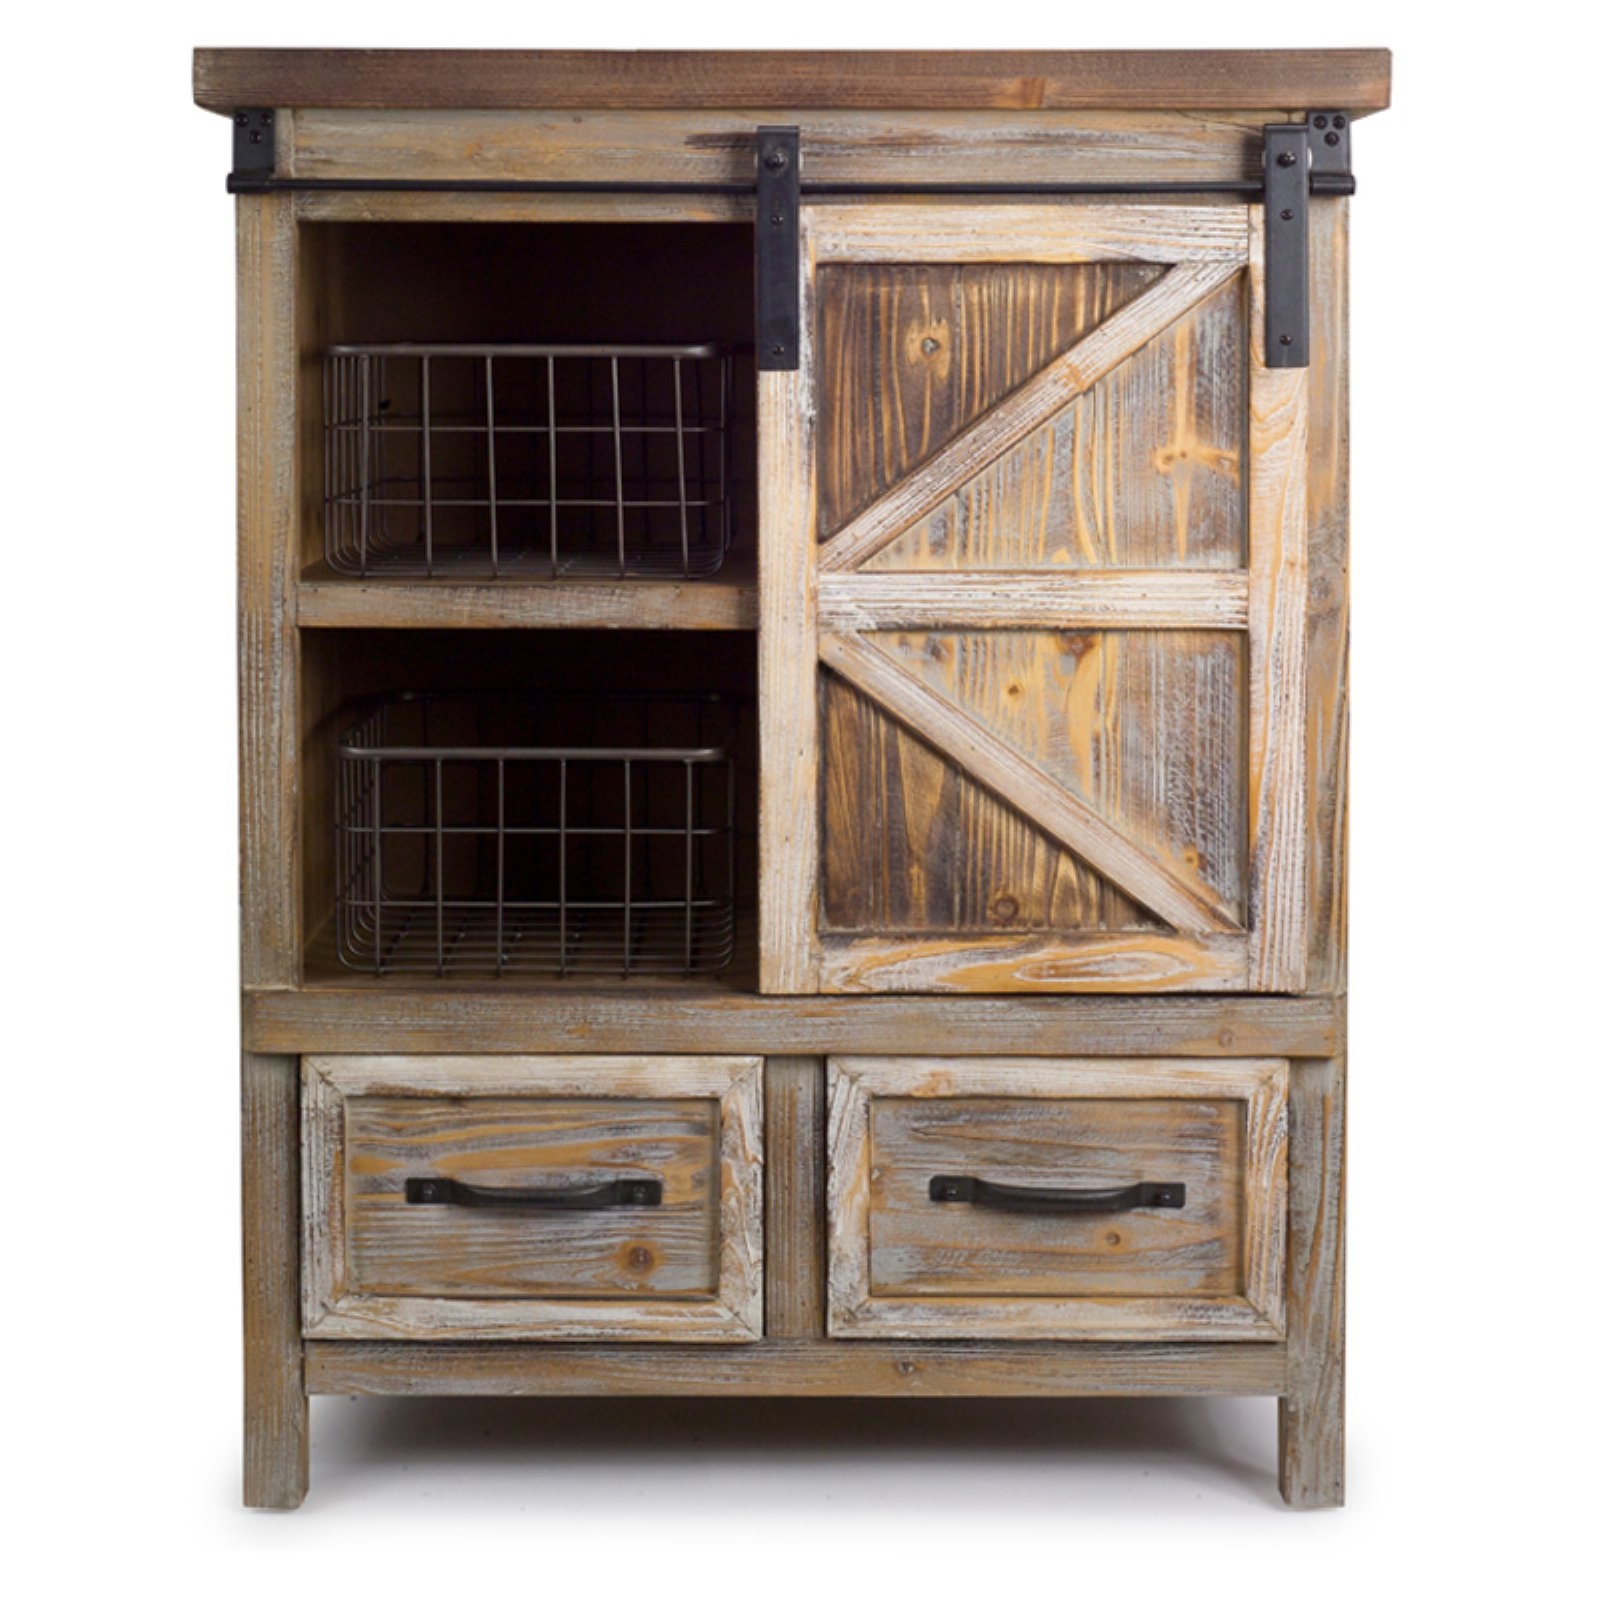 Melrose International 2 Drawer Accent Cabinet with Baskets